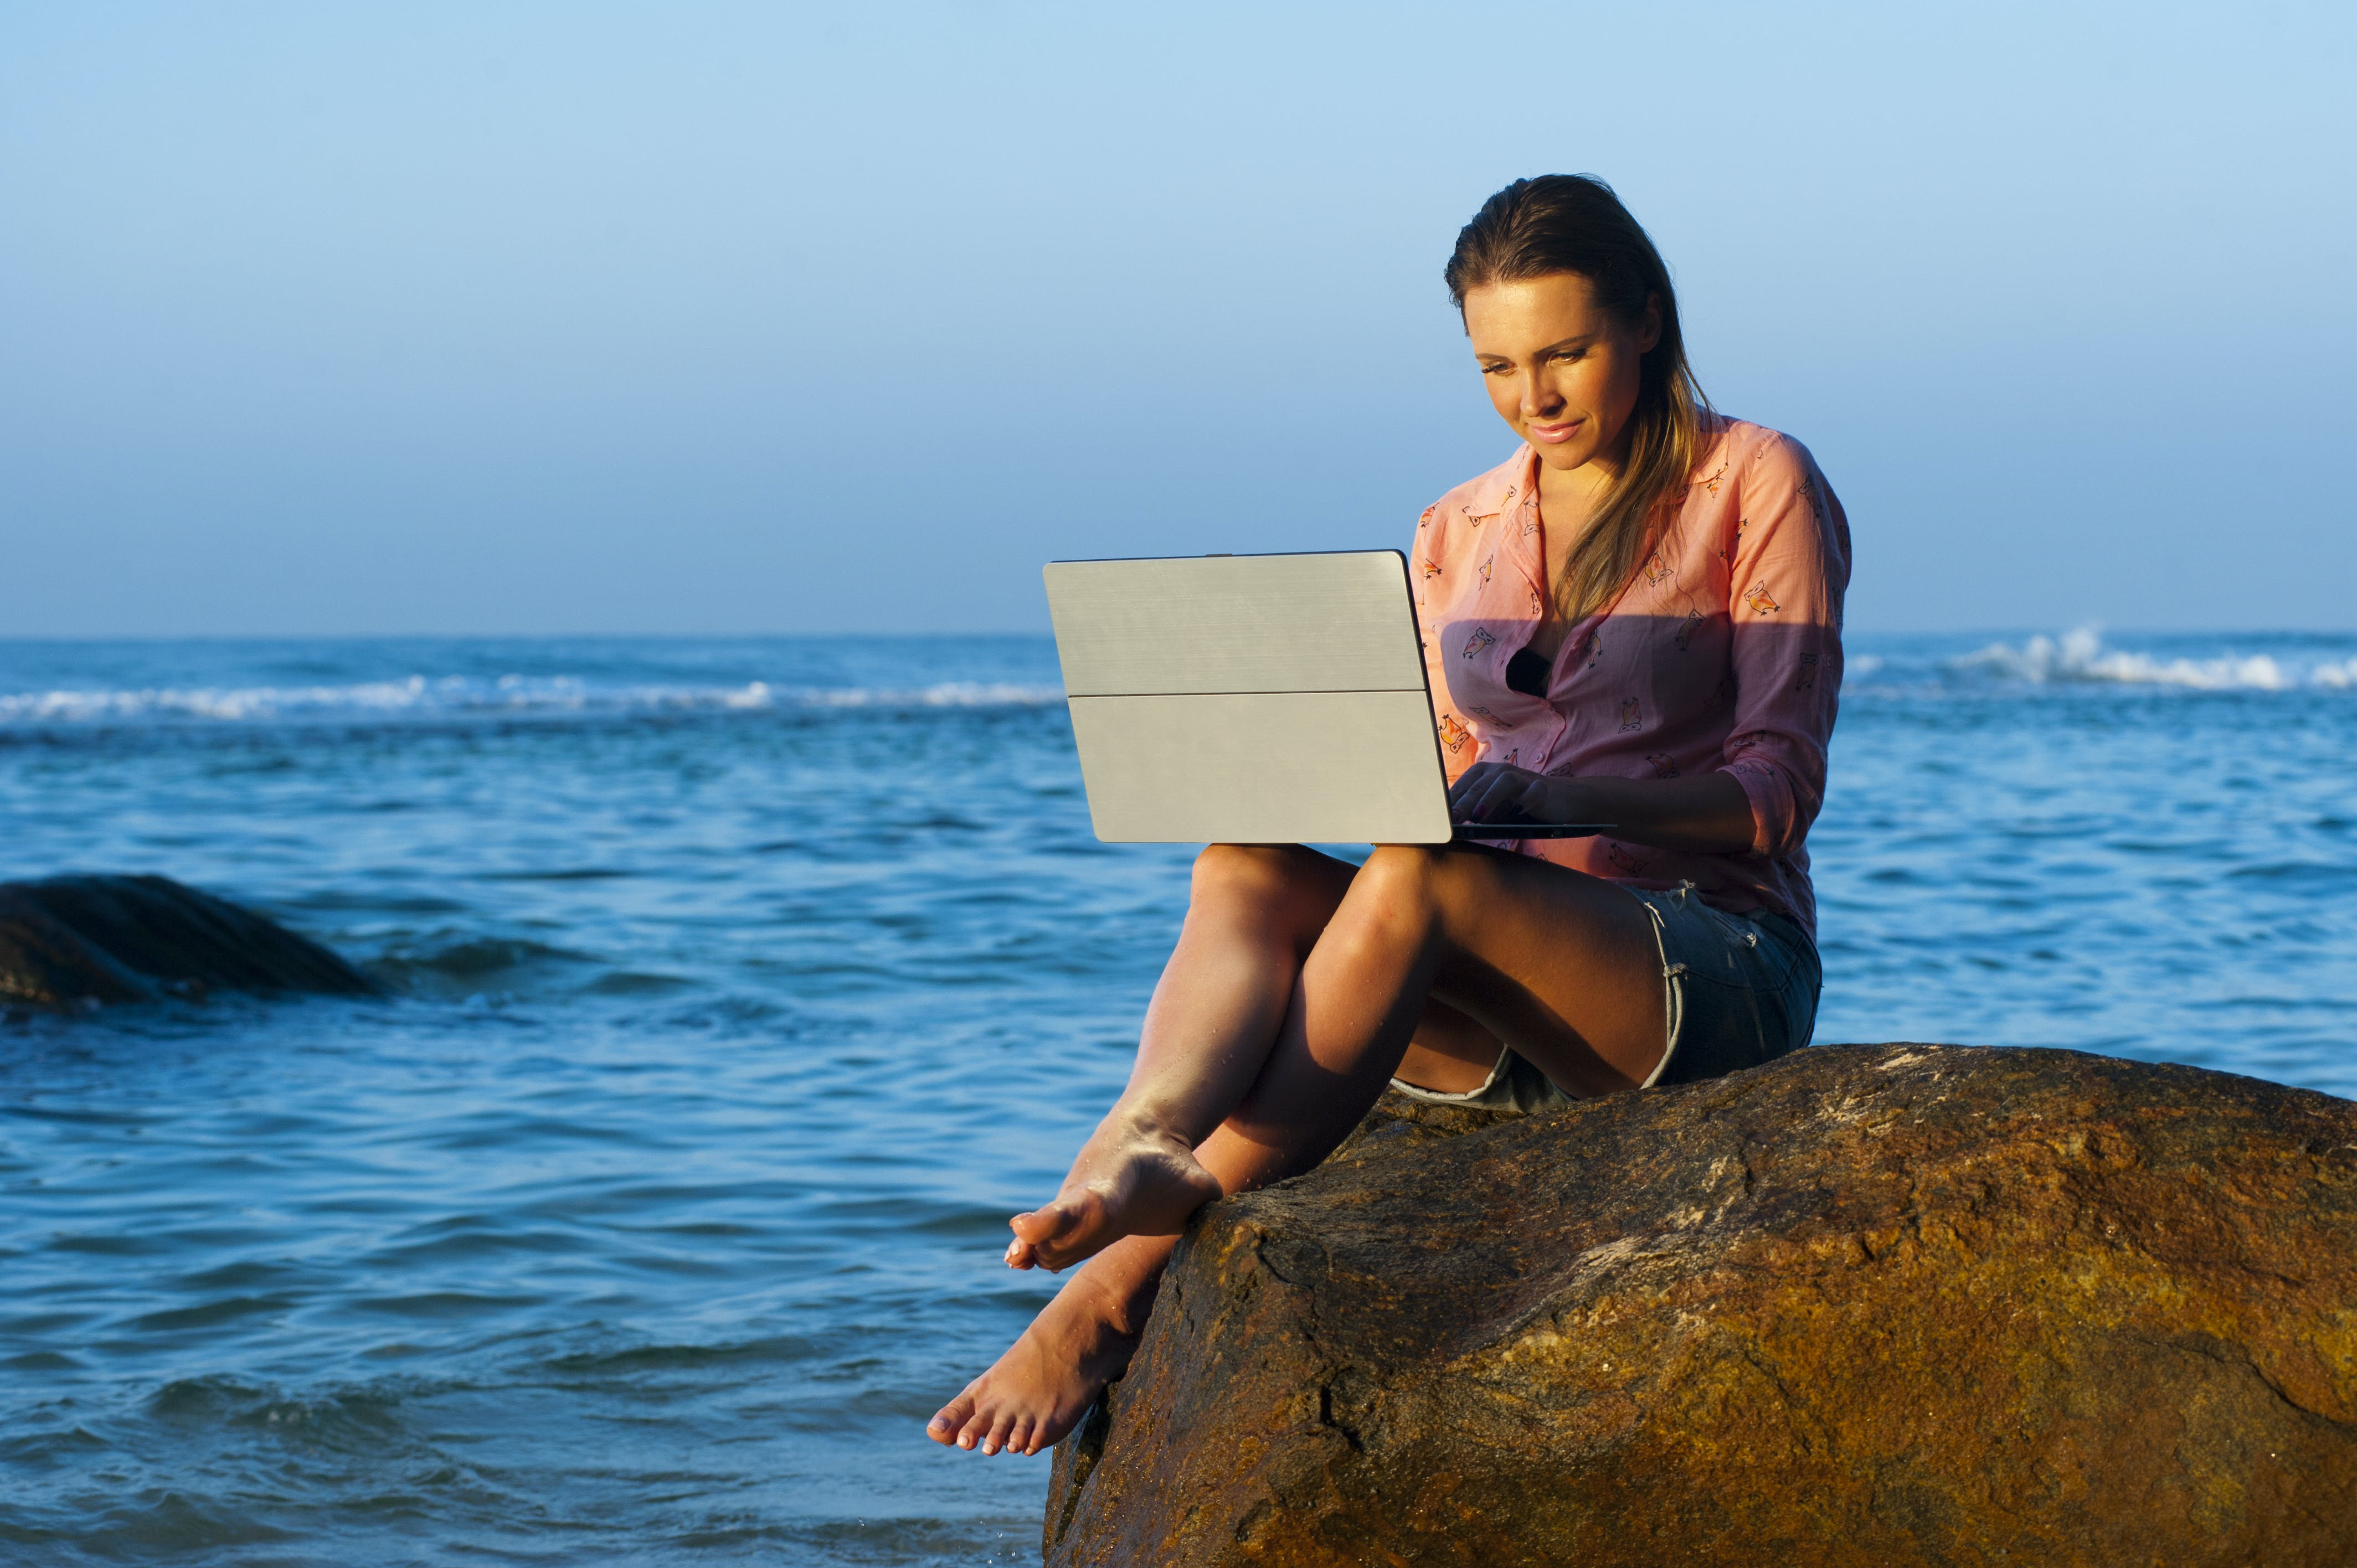 Woman Sitting on Brown Rock While Using Laptop